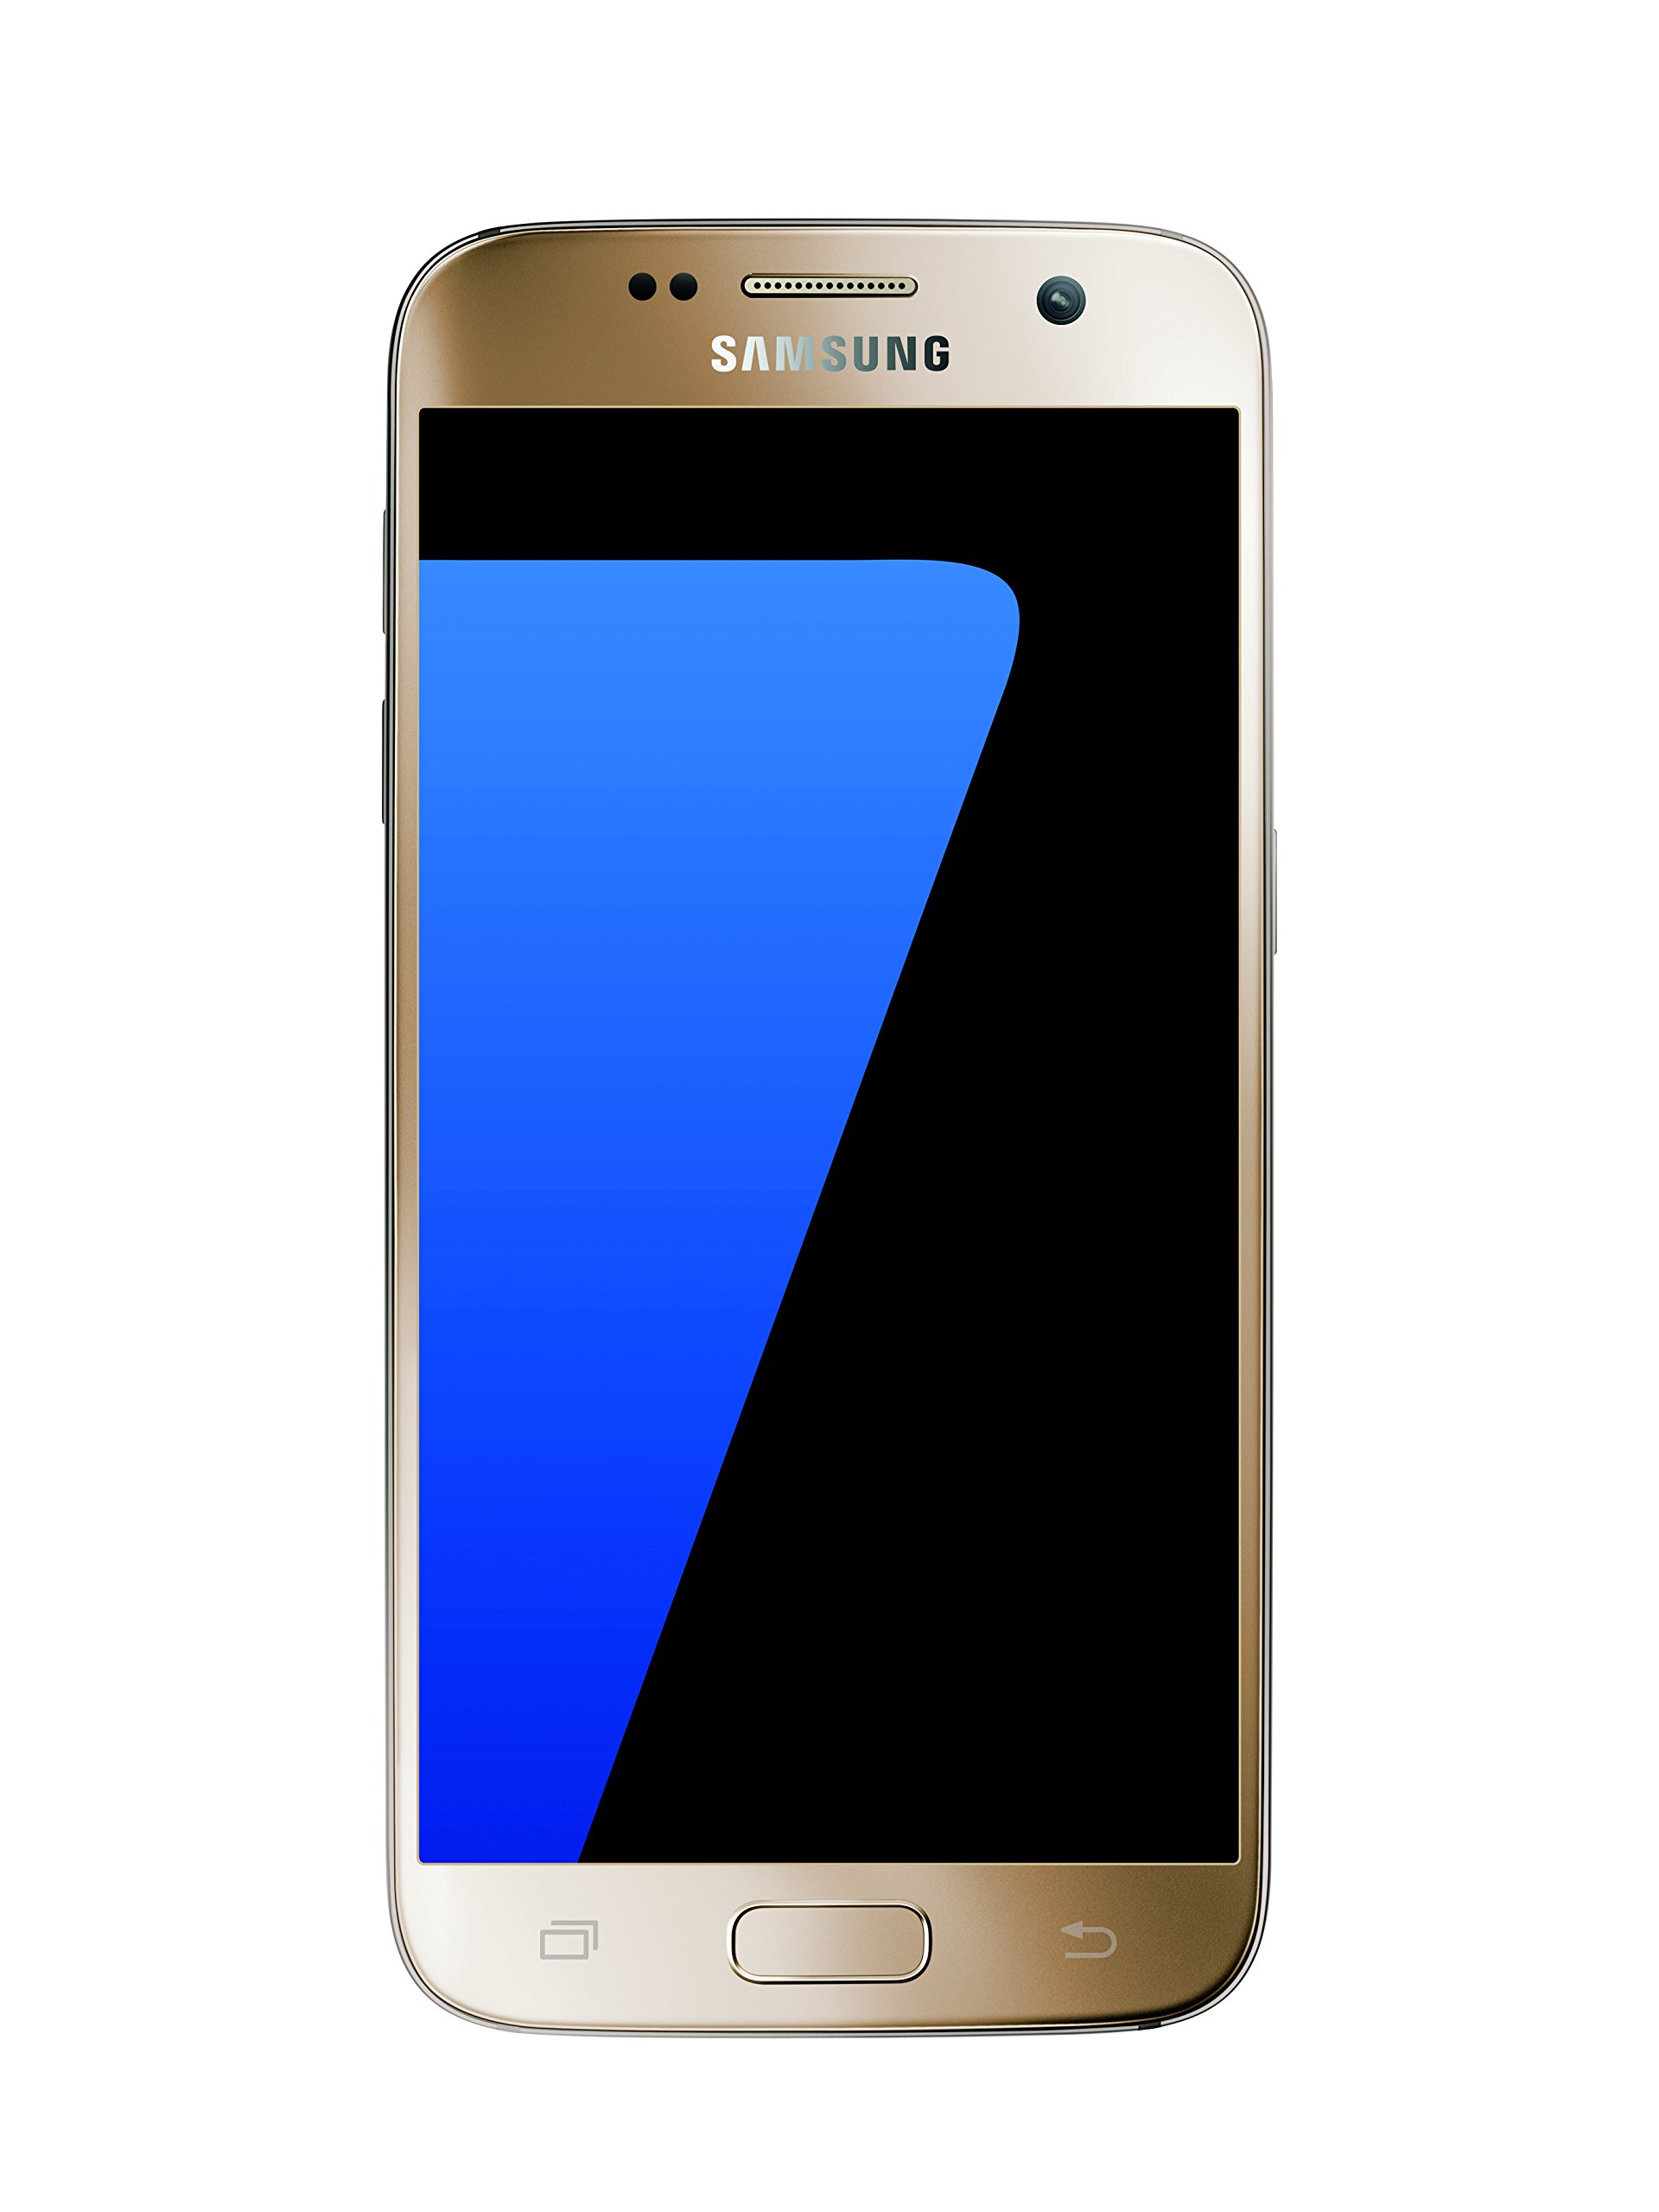 Samsung Galaxy S7 32GB Unlocked (Verizon Wireless) - Gold by Samsung